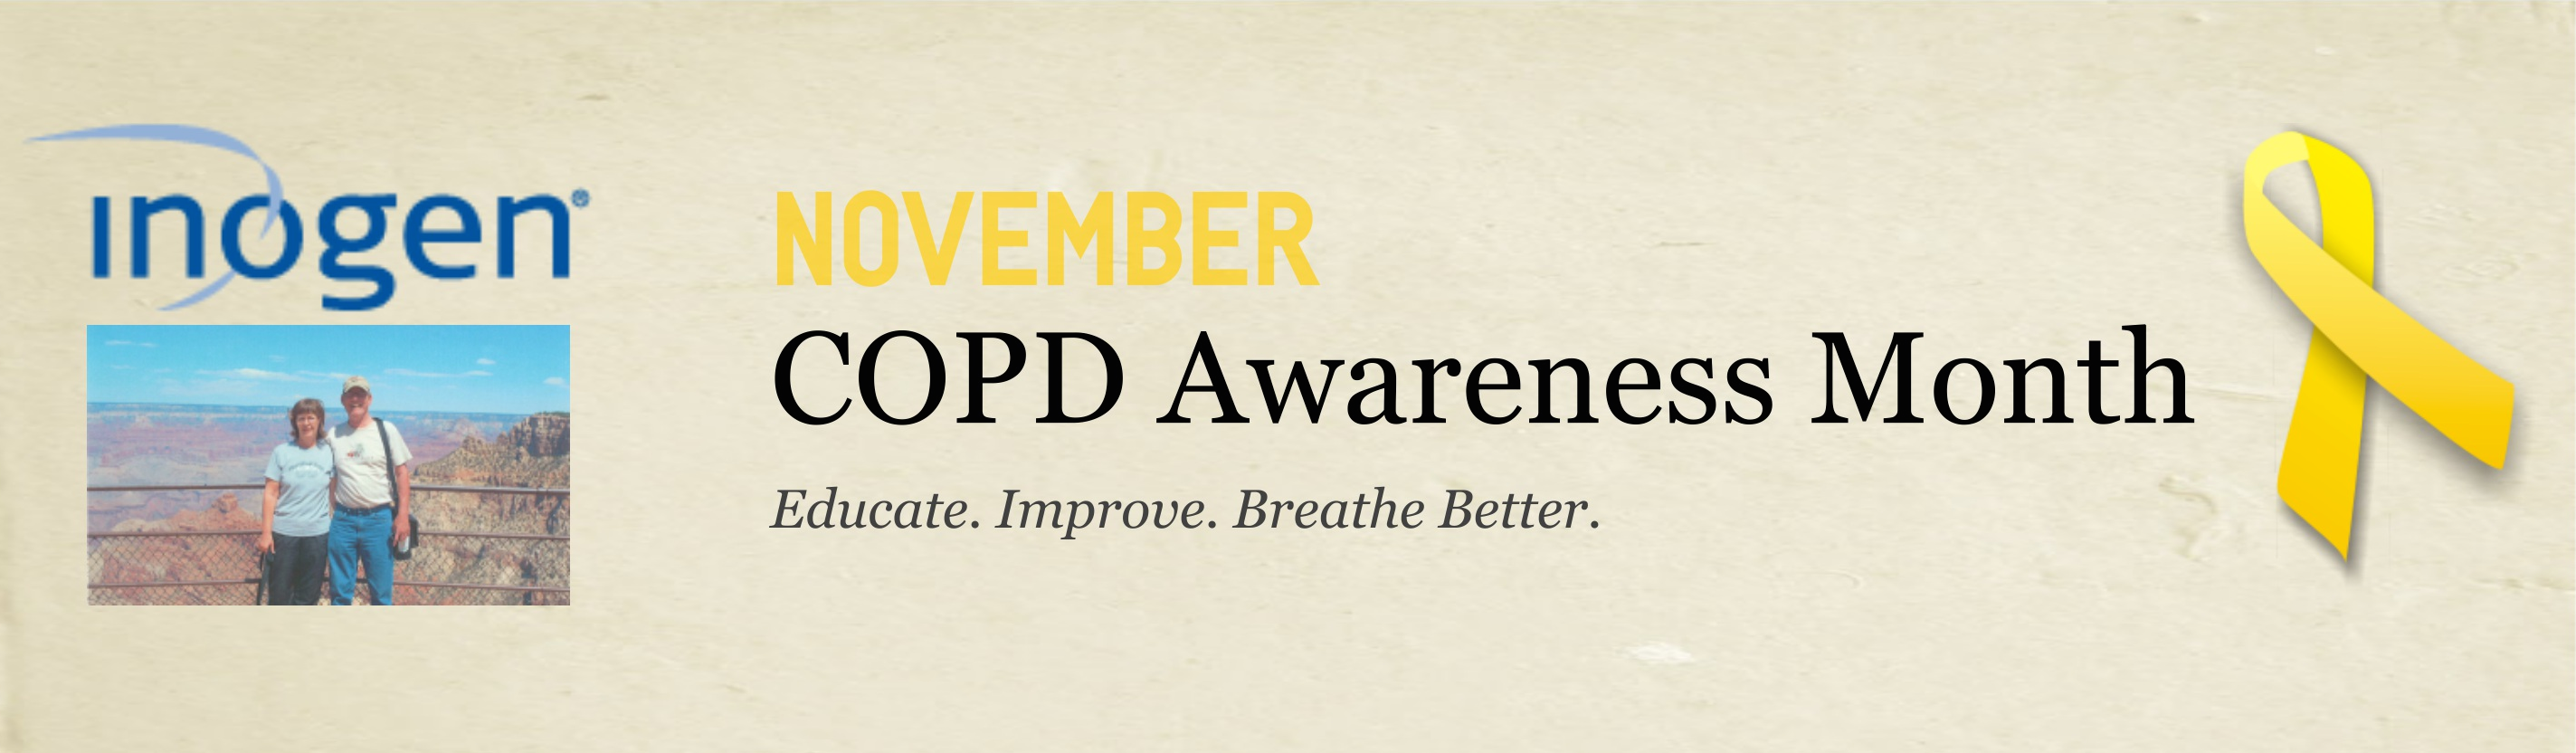 COPD Awareness Banner